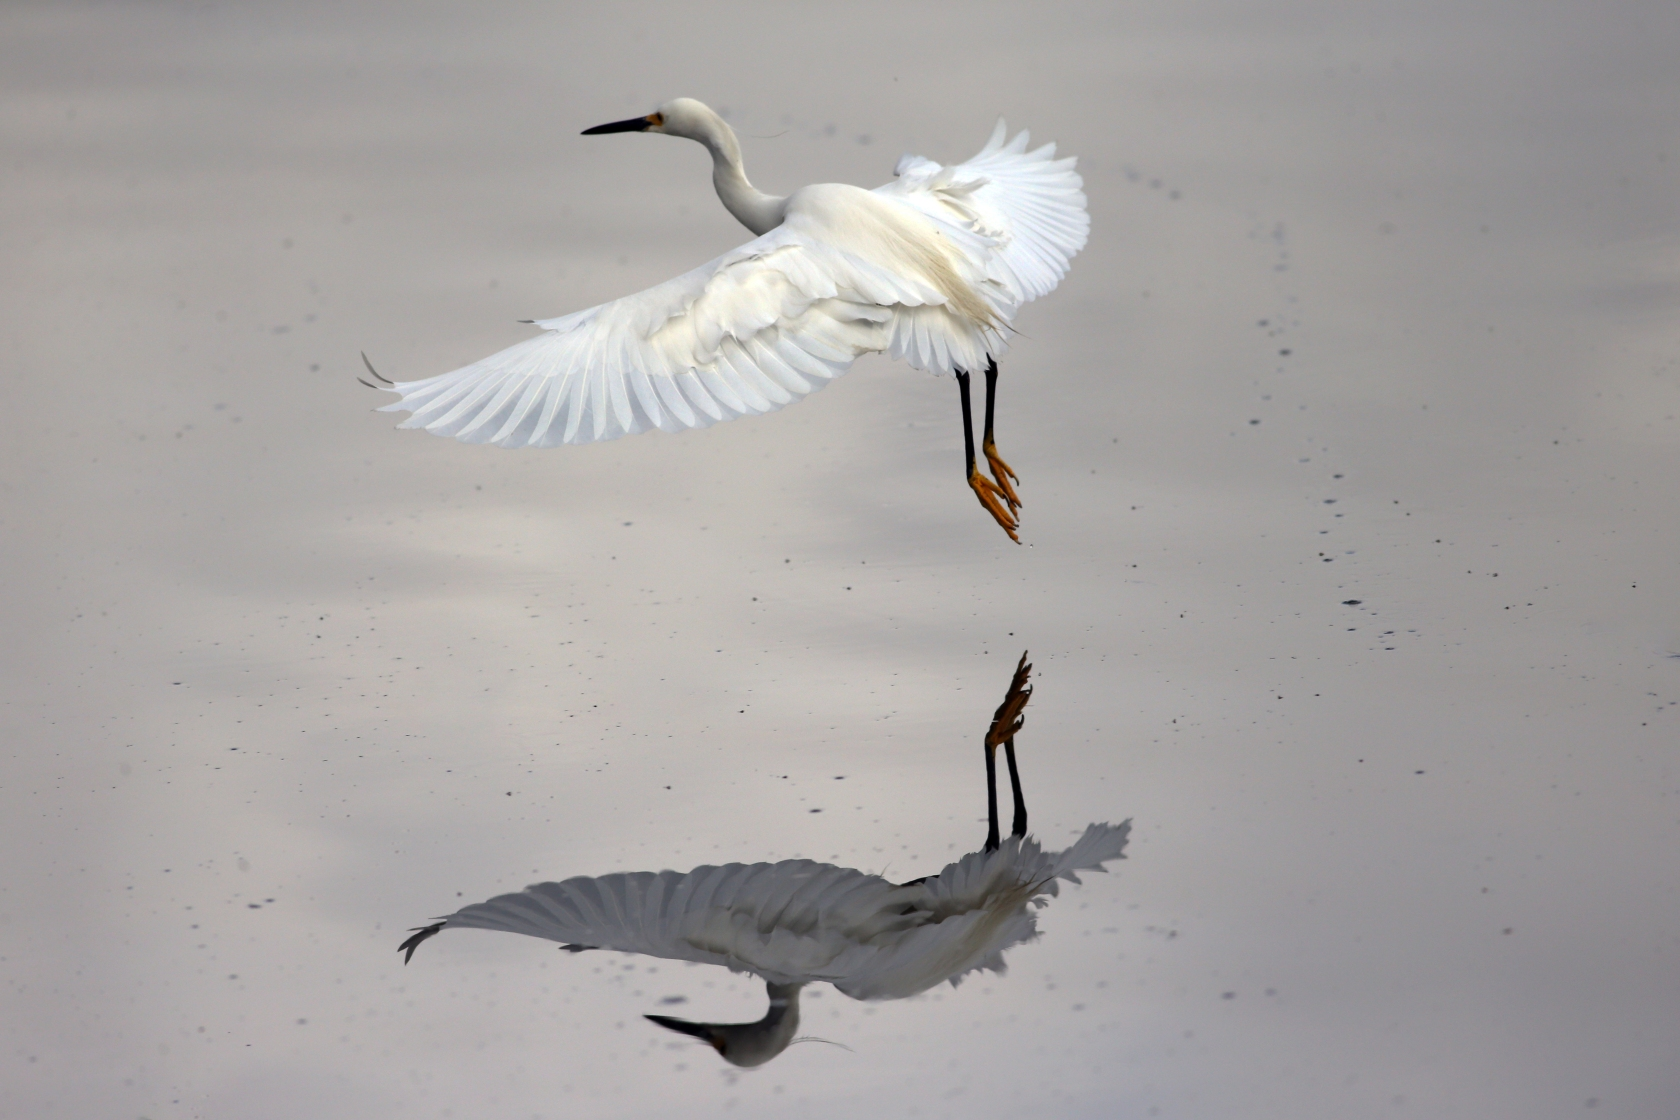 white heron symbolism A white heron is a short story by sarah orne jewett first published by houghton, mifflin and company in 1886, it was soon collected as the title story in jewett's anthology a white heron and other stories.